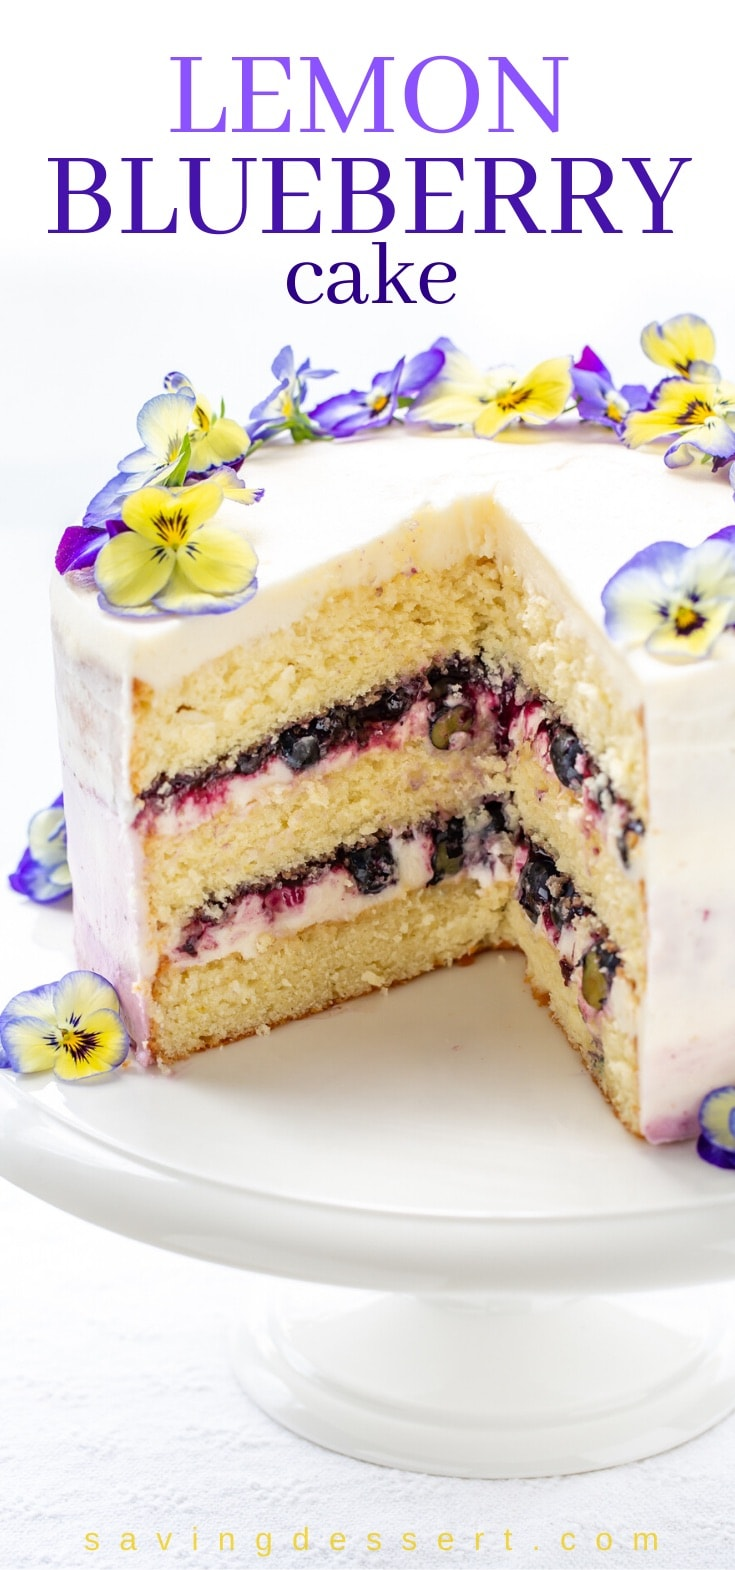 A sliced lemon blueberry cake topped with pansies for decoration